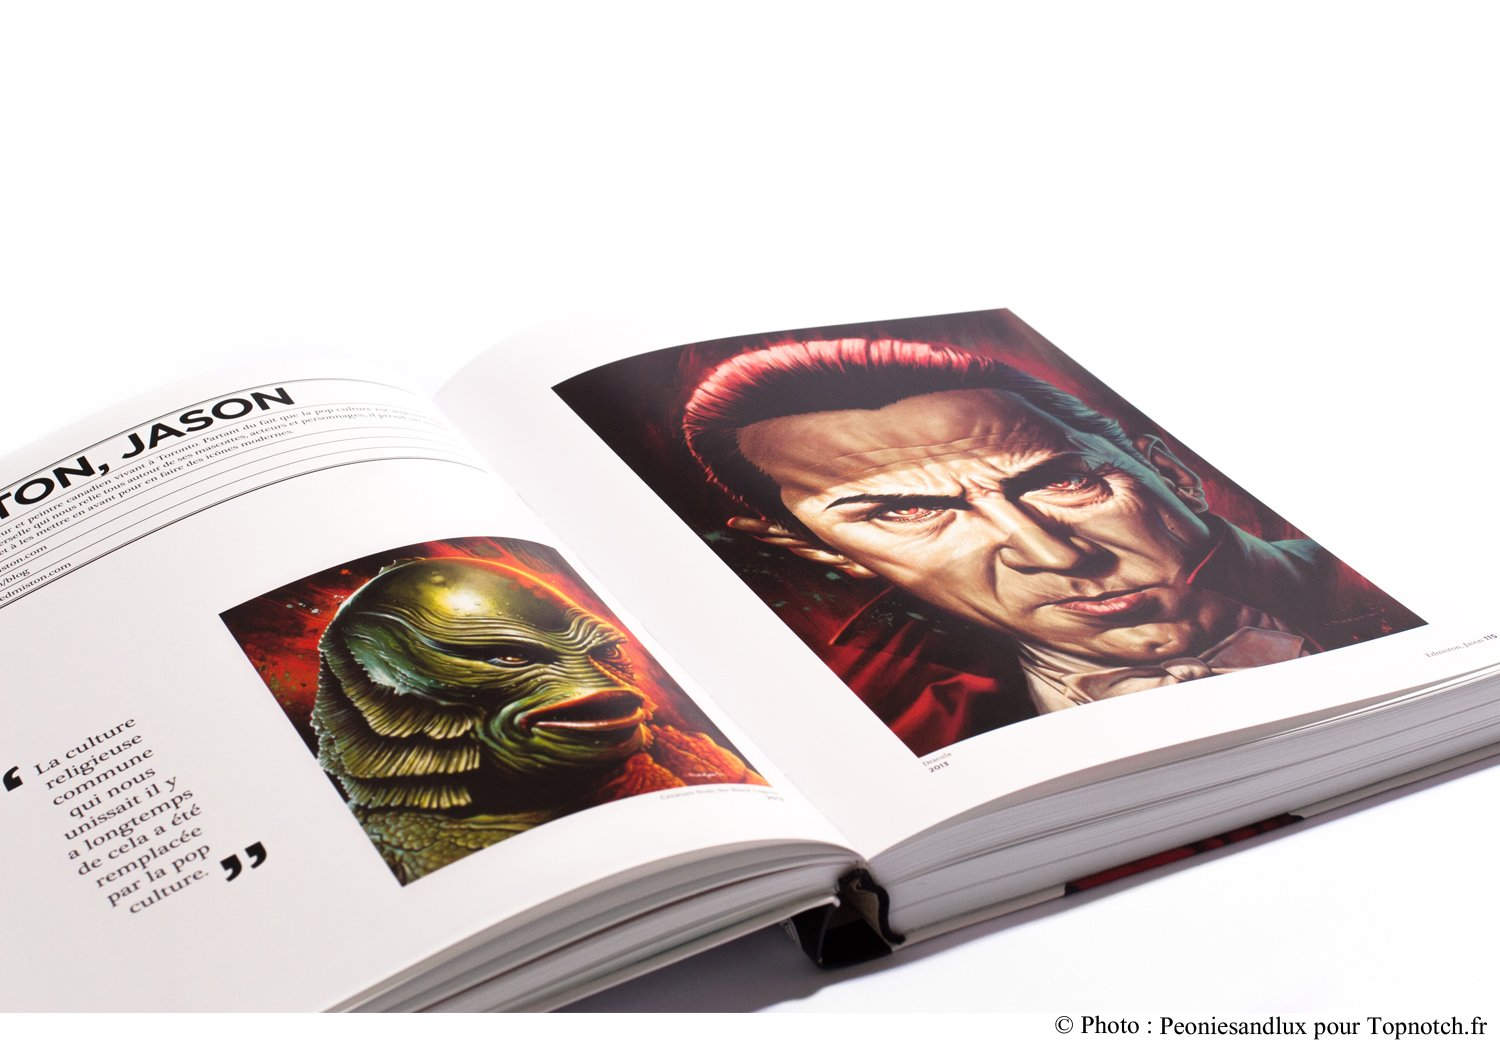 [bank] liste d'ART BOOK 71gZEKbIScL